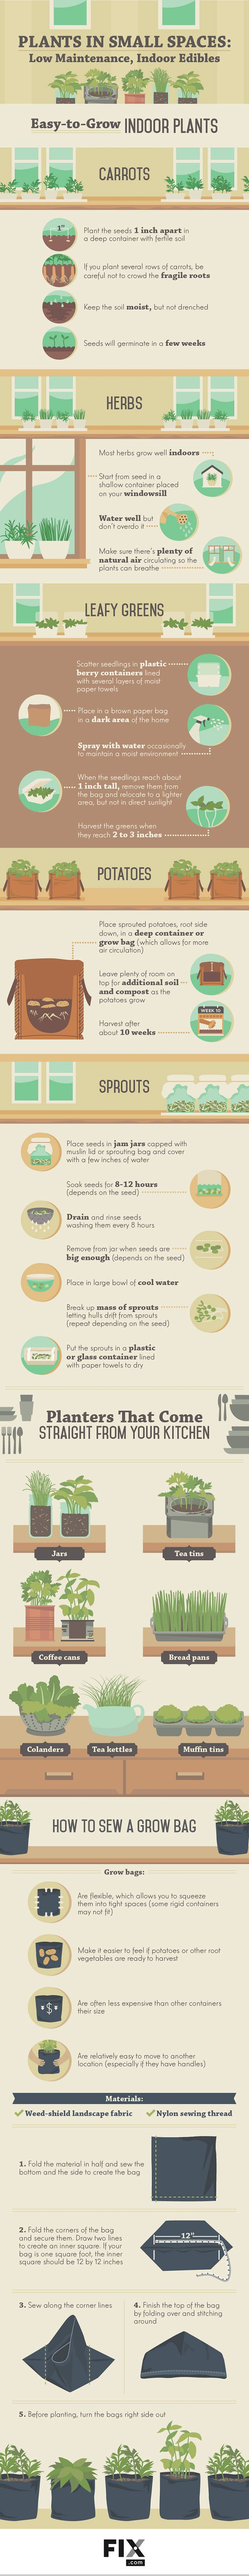 Plants in Small Spaces #Infographic #Plants #Indoor